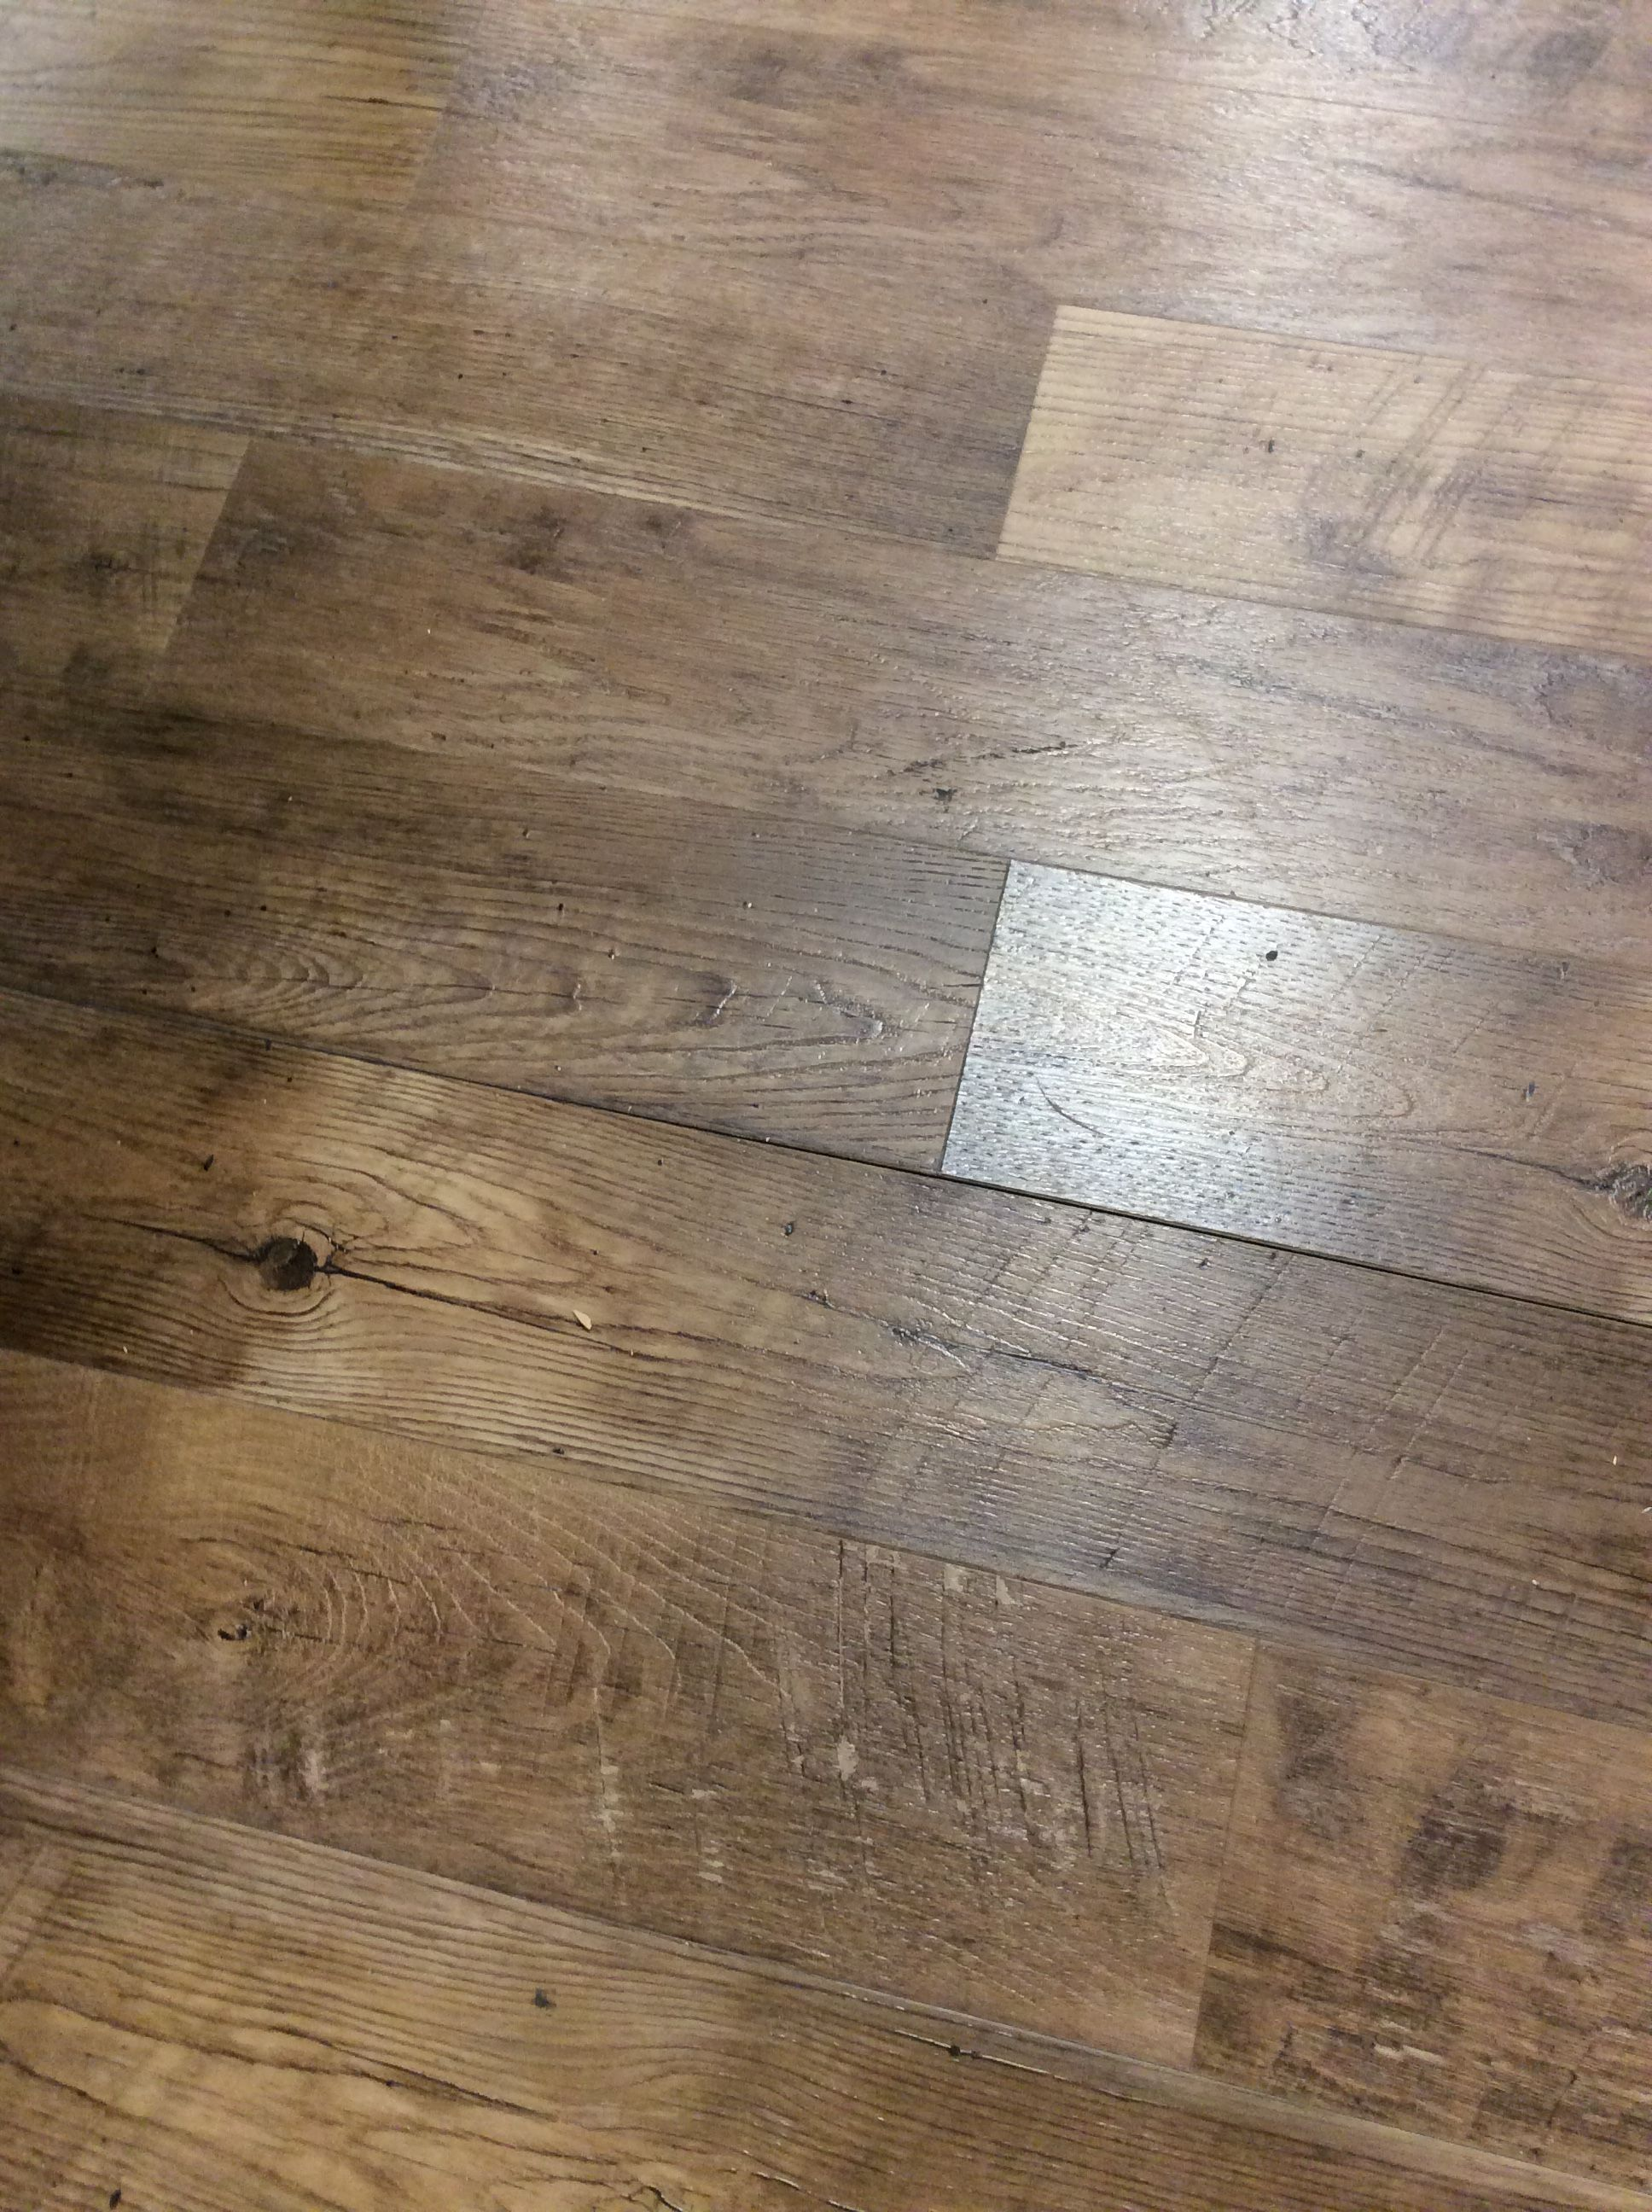 Don T You Just Love This Beautiful Floor It Is So Full Of Character And Texture But Wait Here Is The Surprise It Flooring Lvp Flooring Vinyl Plank Flooring